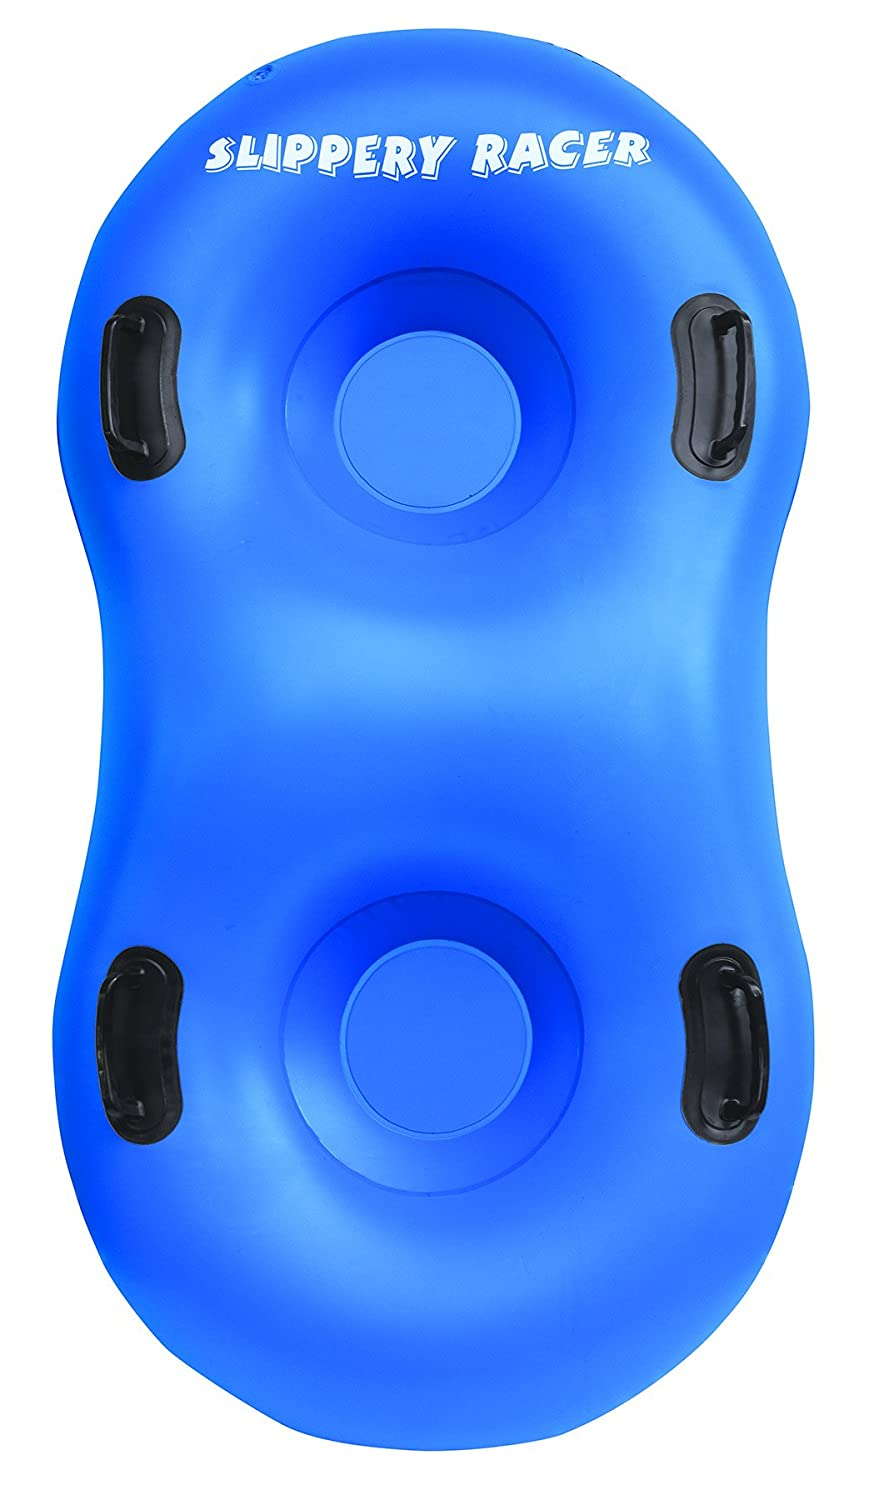 Slippery Racer Airdual Inflatable Snow Tube Sled Blue